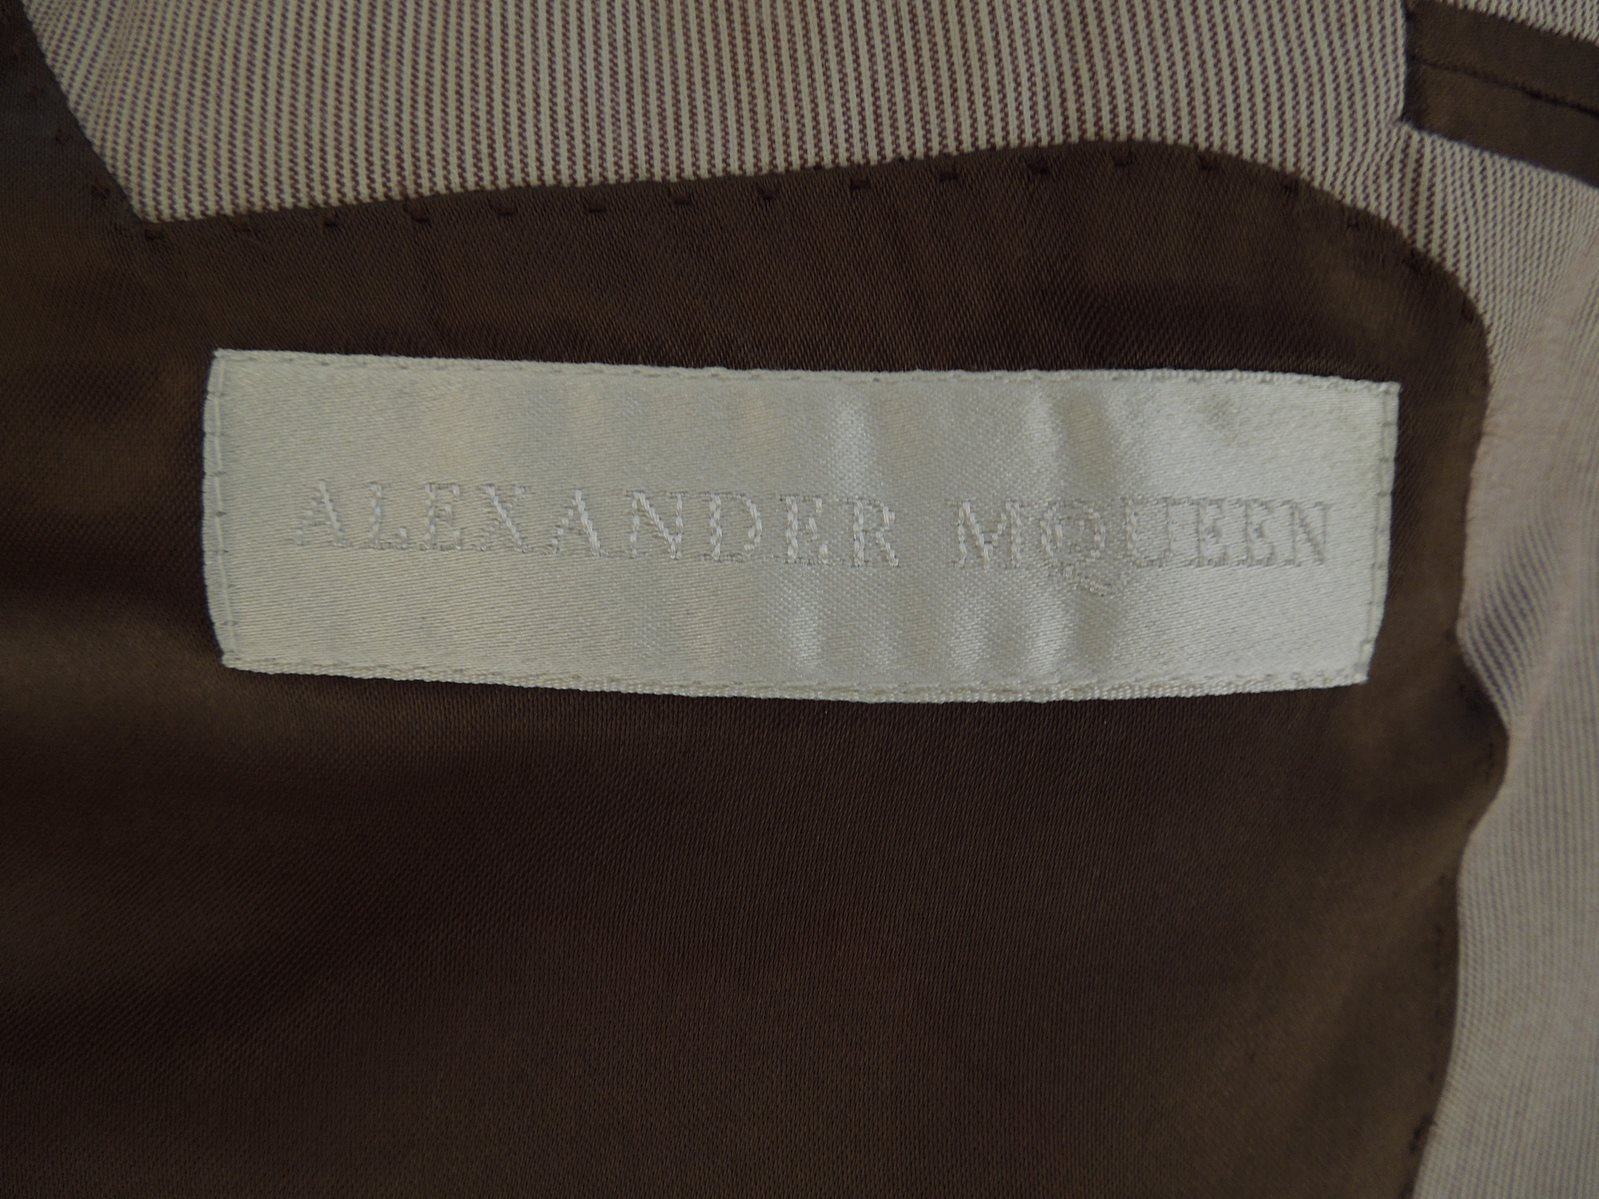 Alexander McQueen 2 Button Single Breasted Jacket - The Loft, London